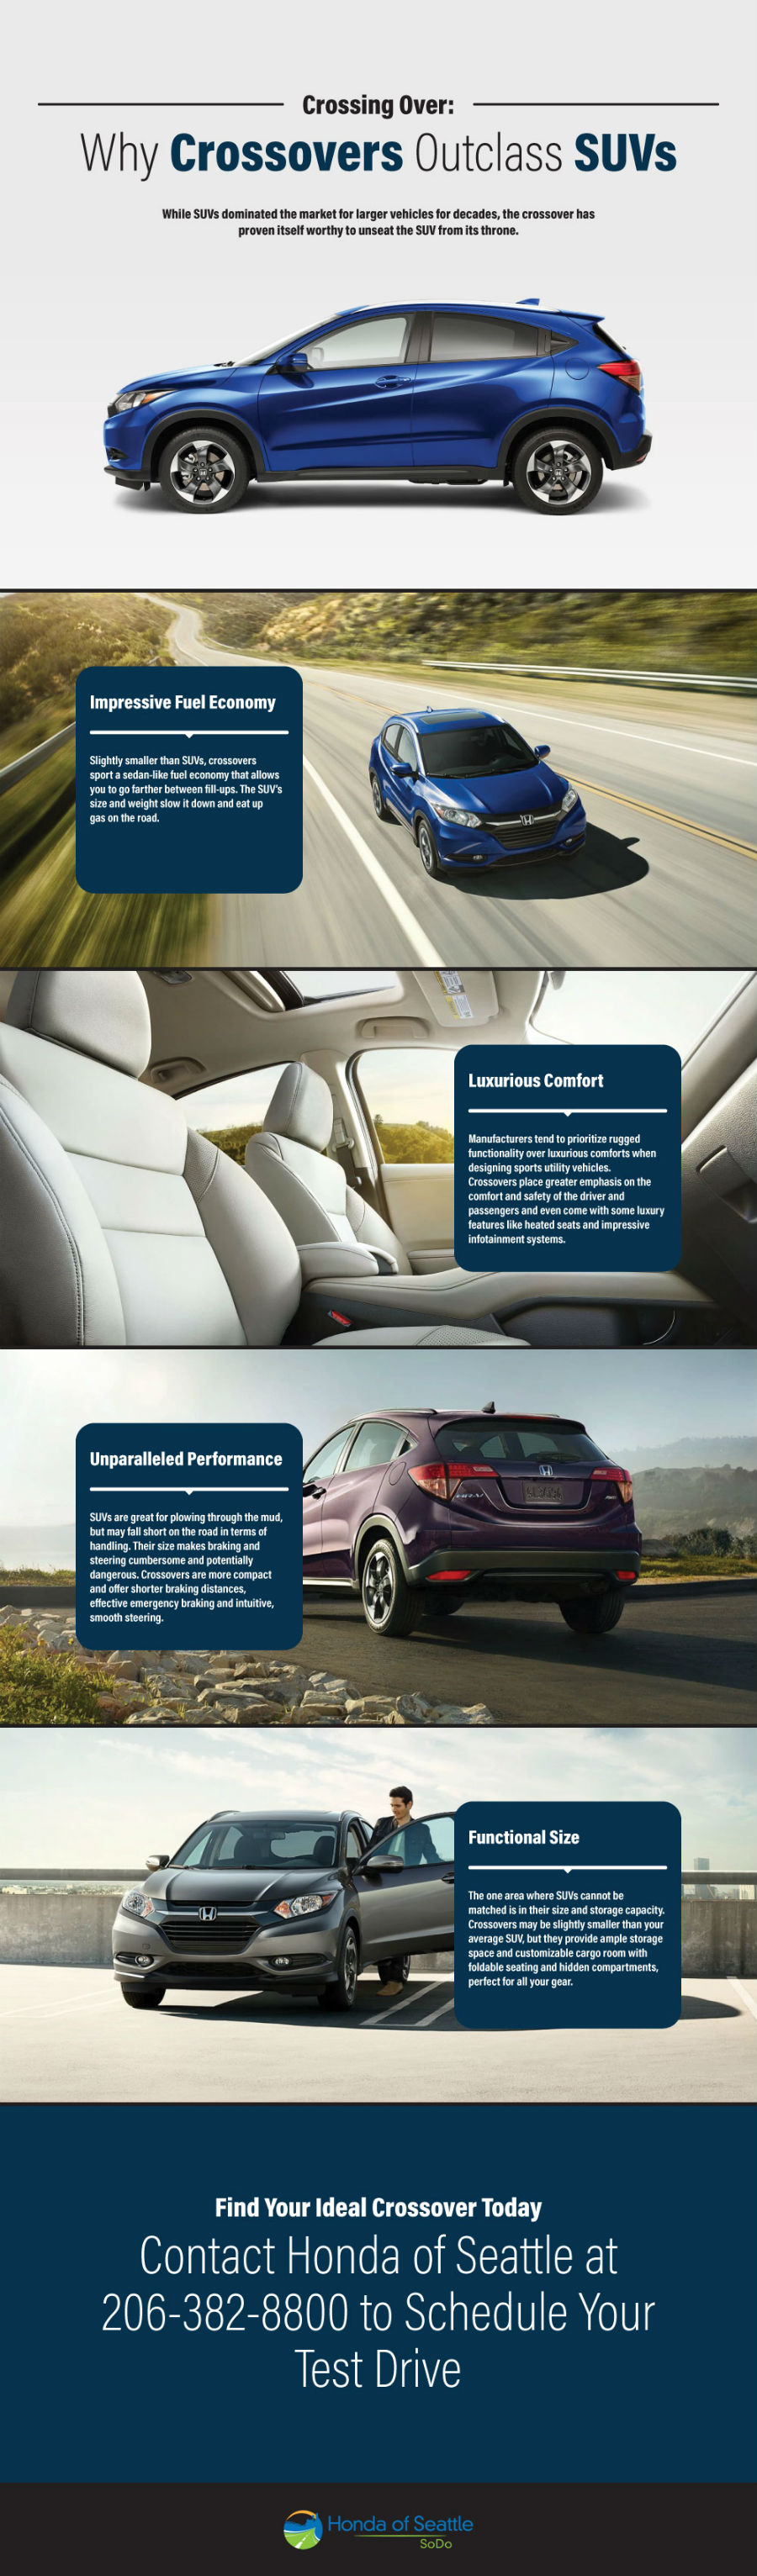 Why crossovers outclass suvs honda of seattle blog for Honda of seattle service